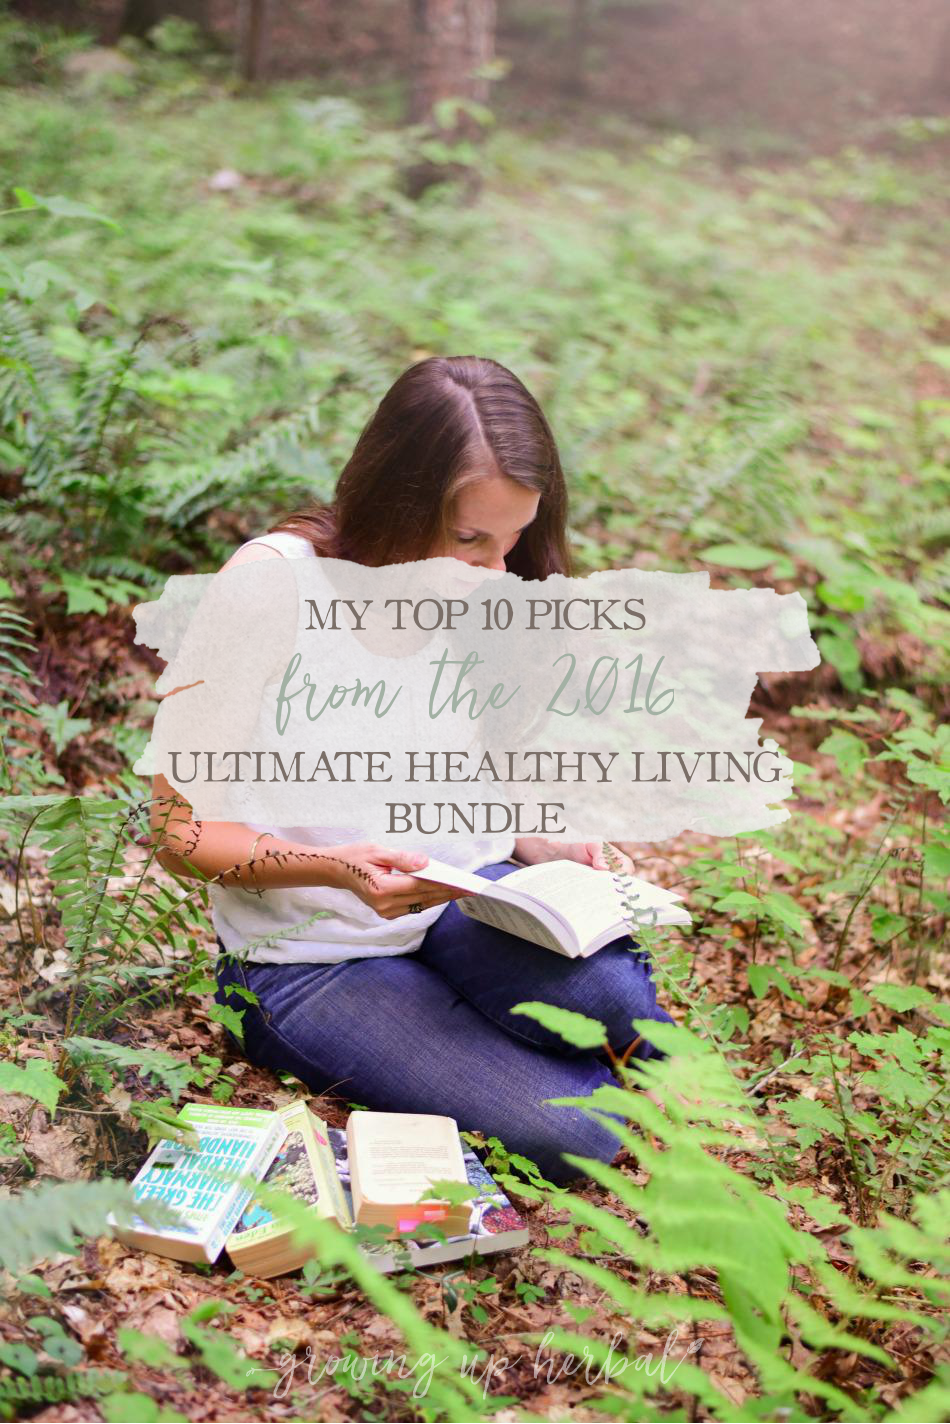 My Top 10 Picks From The 2016 Ultimate Healthy Living Bundle | Growing Up Herbal | Check out how I'm using the 2016 Ultimate Healthy Living Bundle + bonuses!